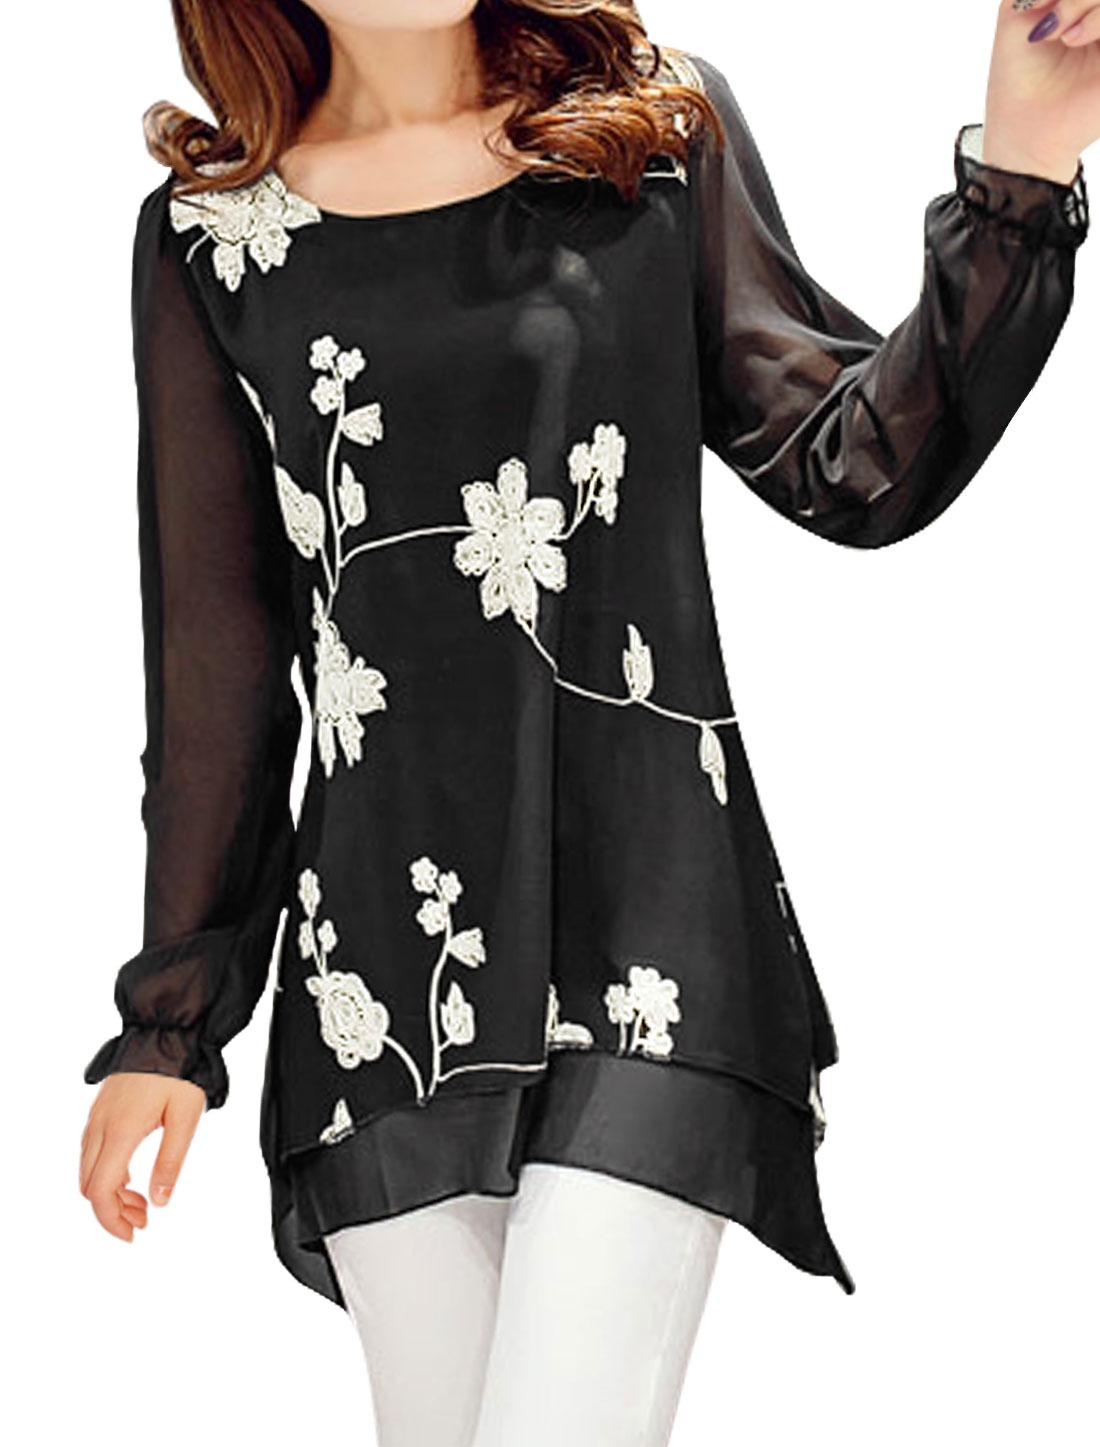 Ladies Floral Stitched Layered Asymmetric Hem Tunic Blouse Black S